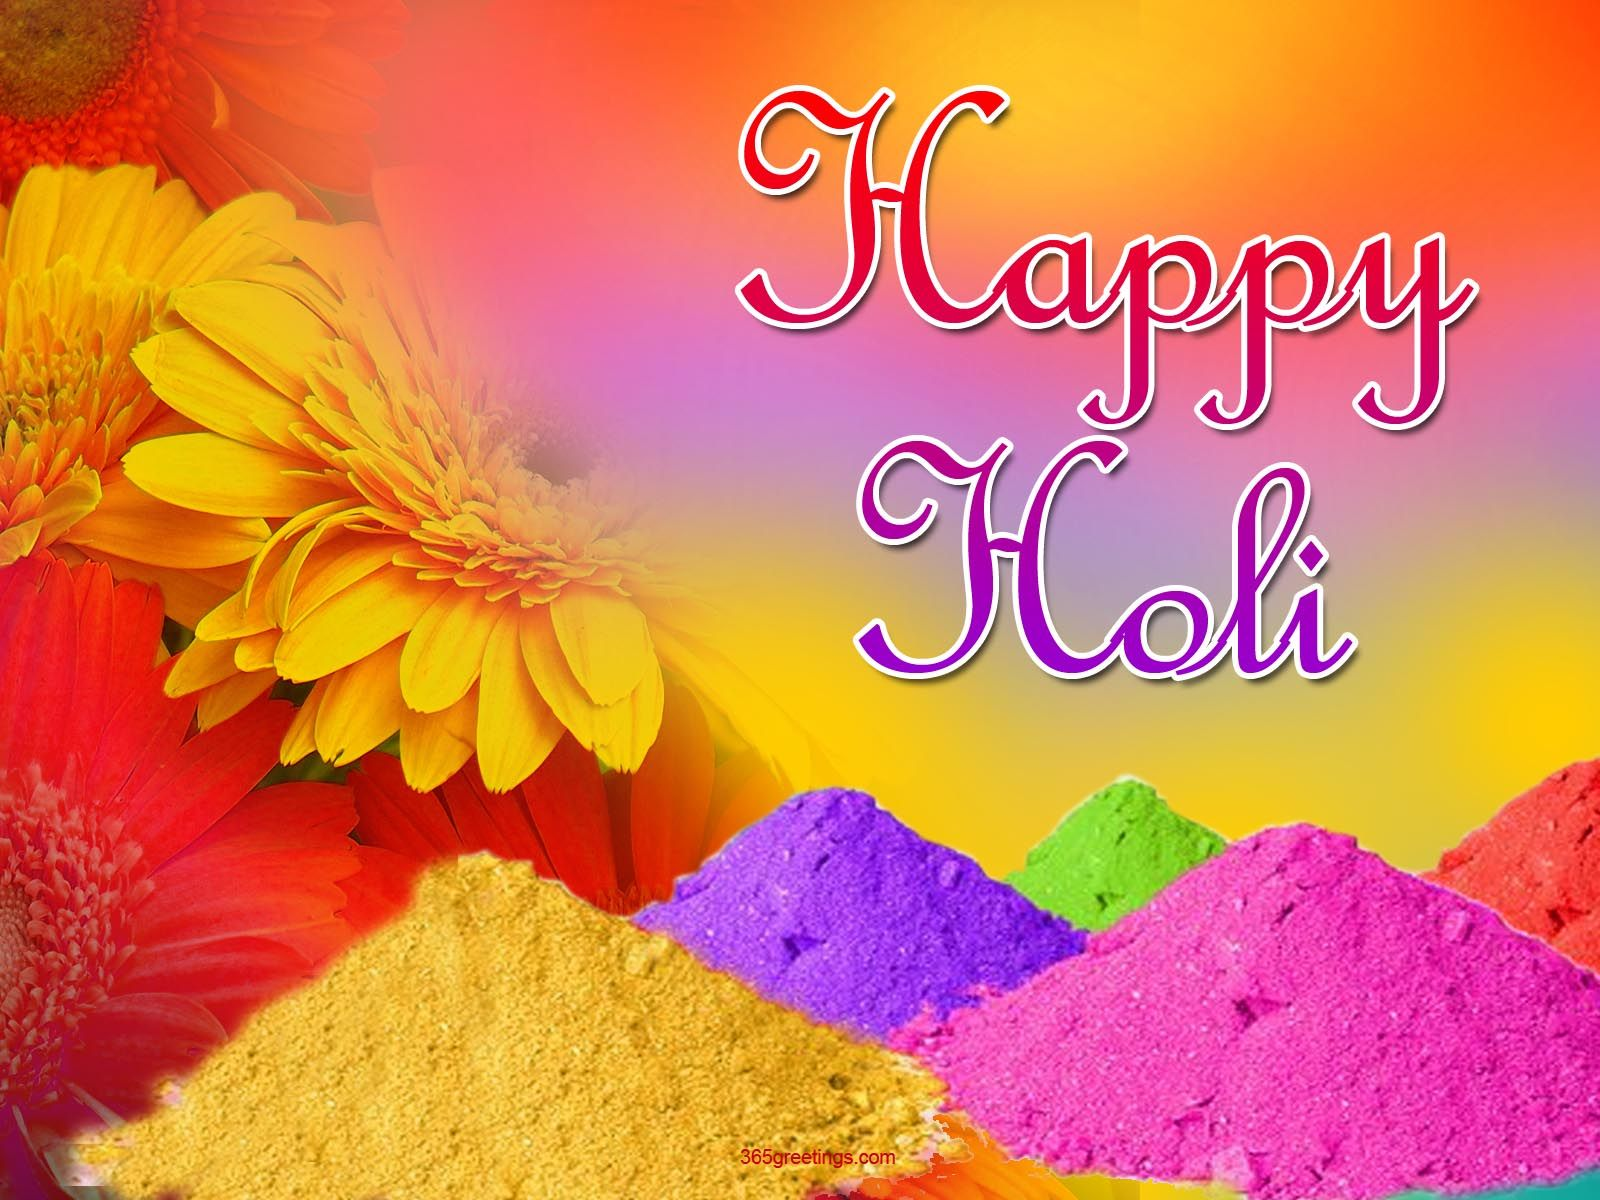 Hi Friends, Wishing you & your family A very special